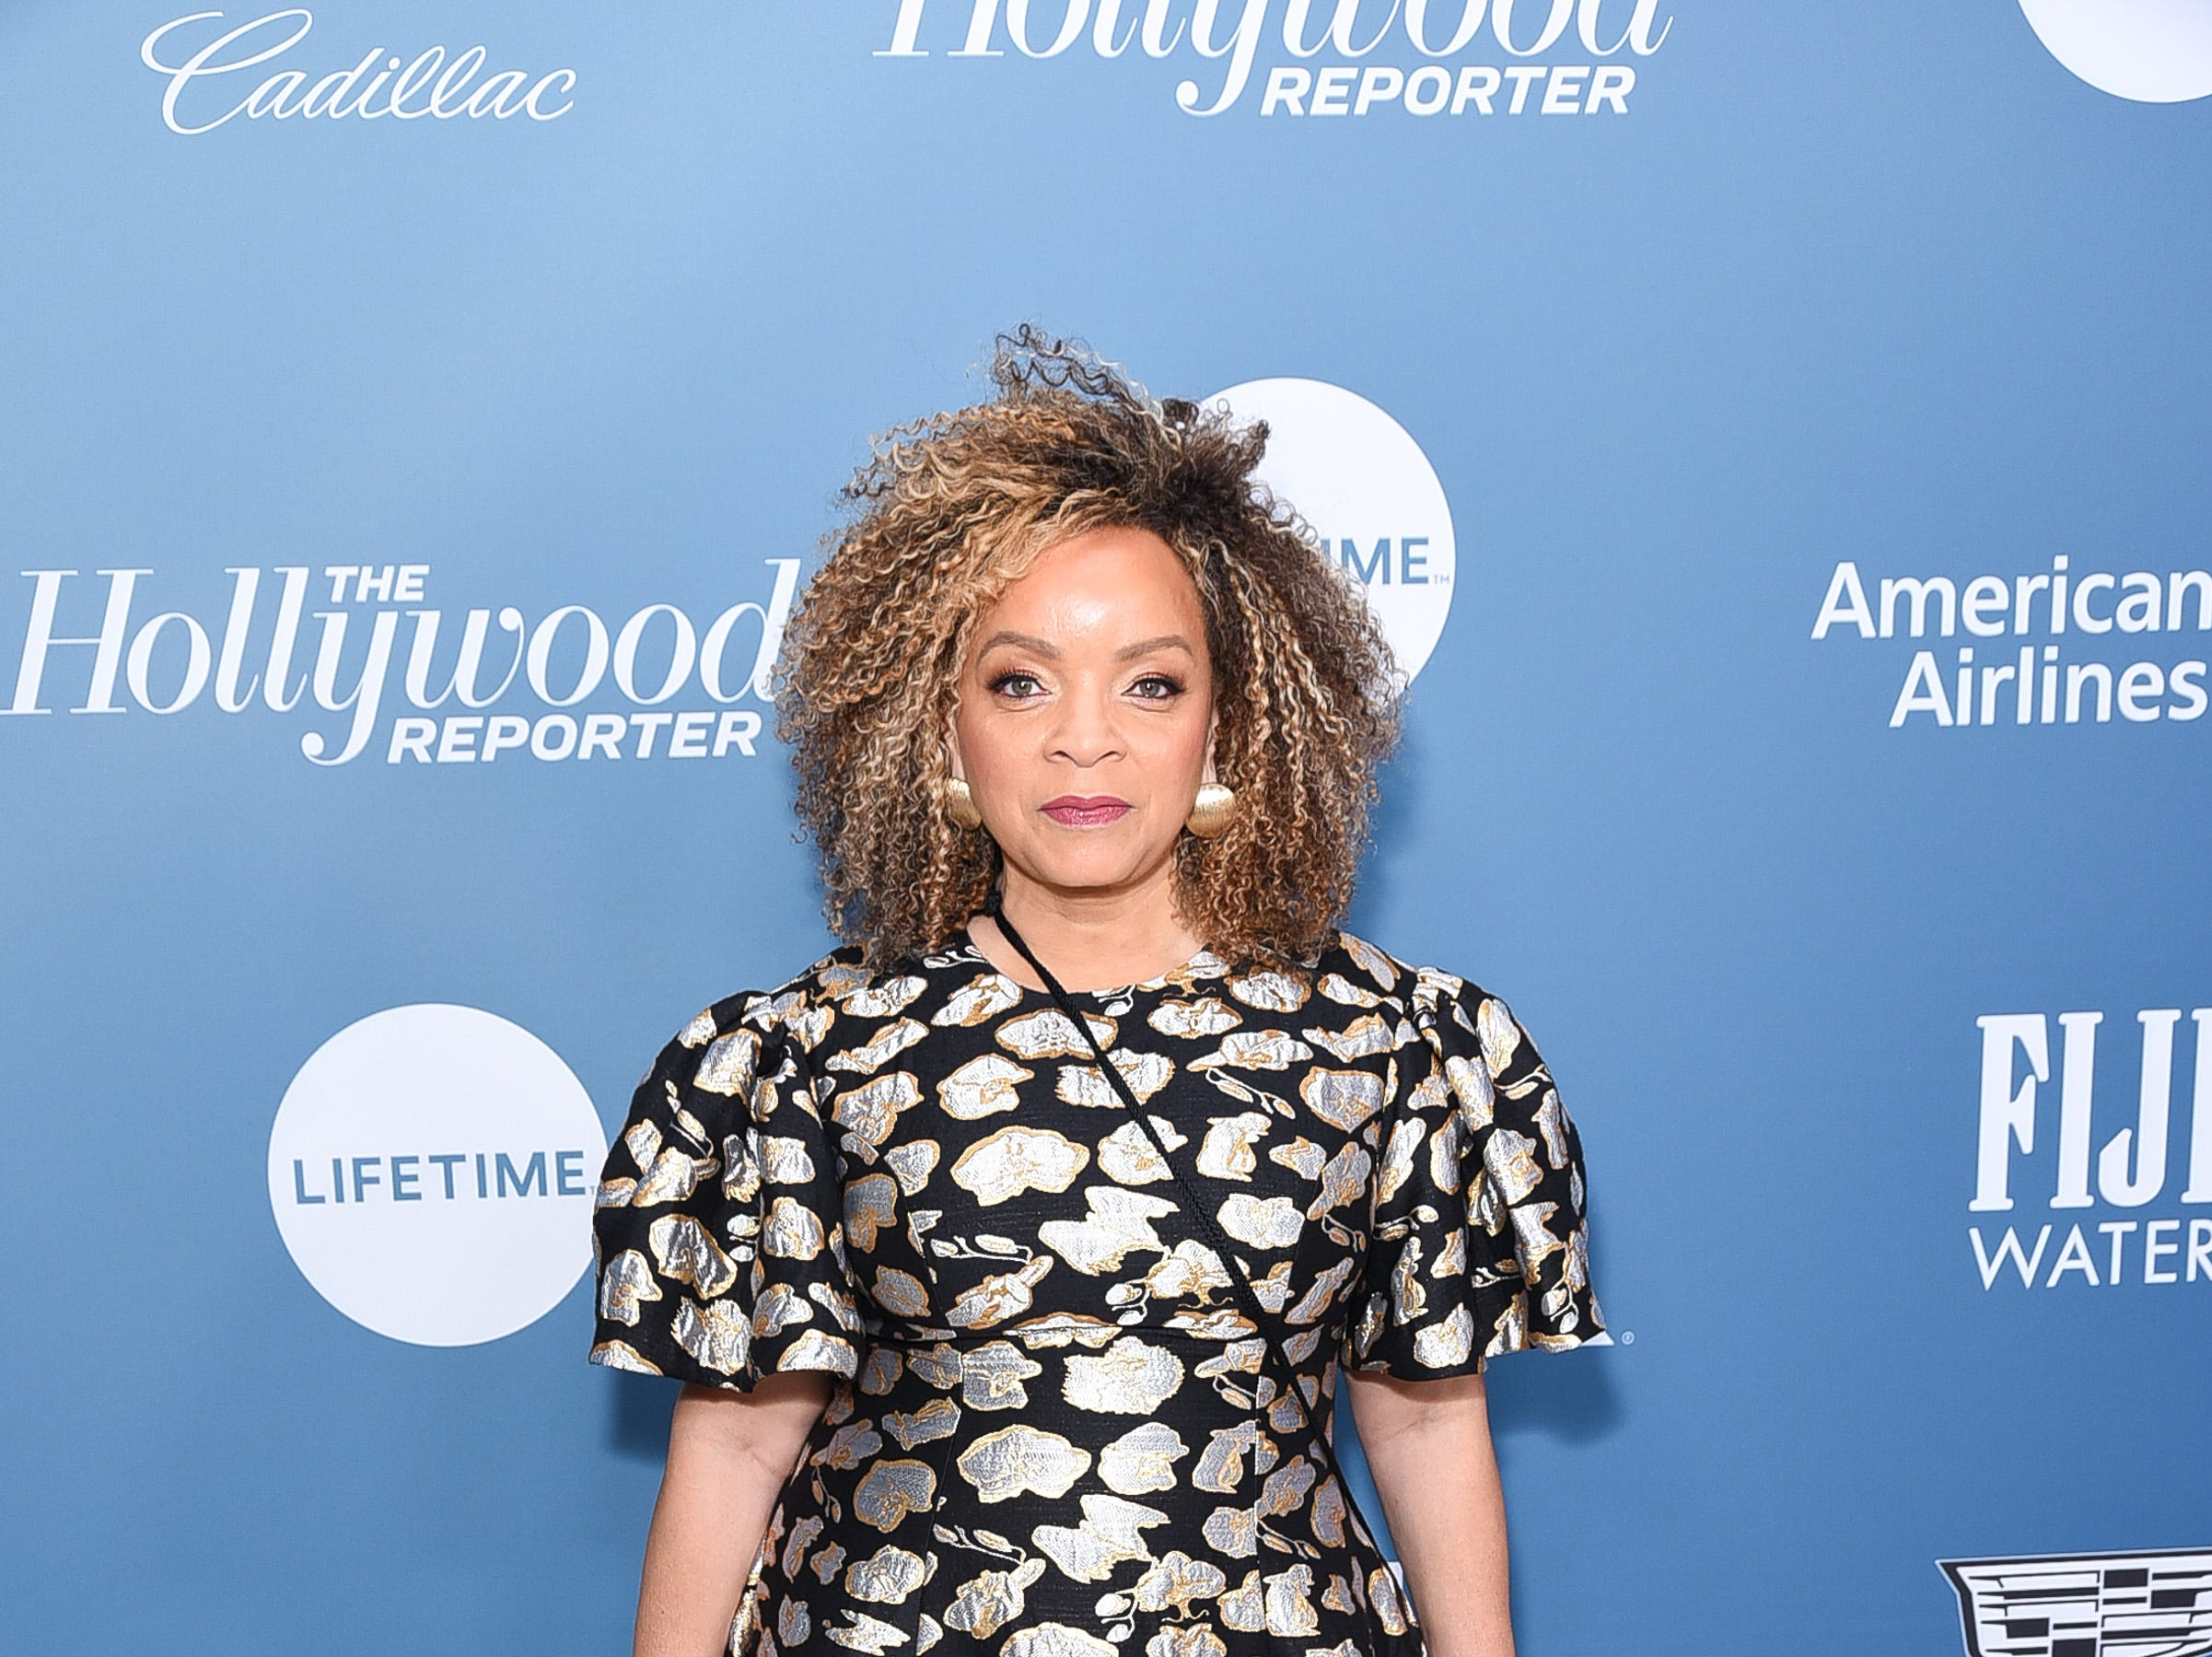 LOS ANGELES, CALIFORNIA - DECEMBER 05: Ruth E. Carter attends The Hollywood Reporter's Power 100 Women In Entertainment at Milk Studios on December 05, 2018 in Los Angeles, California. (Photo by Presley Ann/Getty Images) ORG XMIT: 775264723 ORIG FILE ID: 1077829150